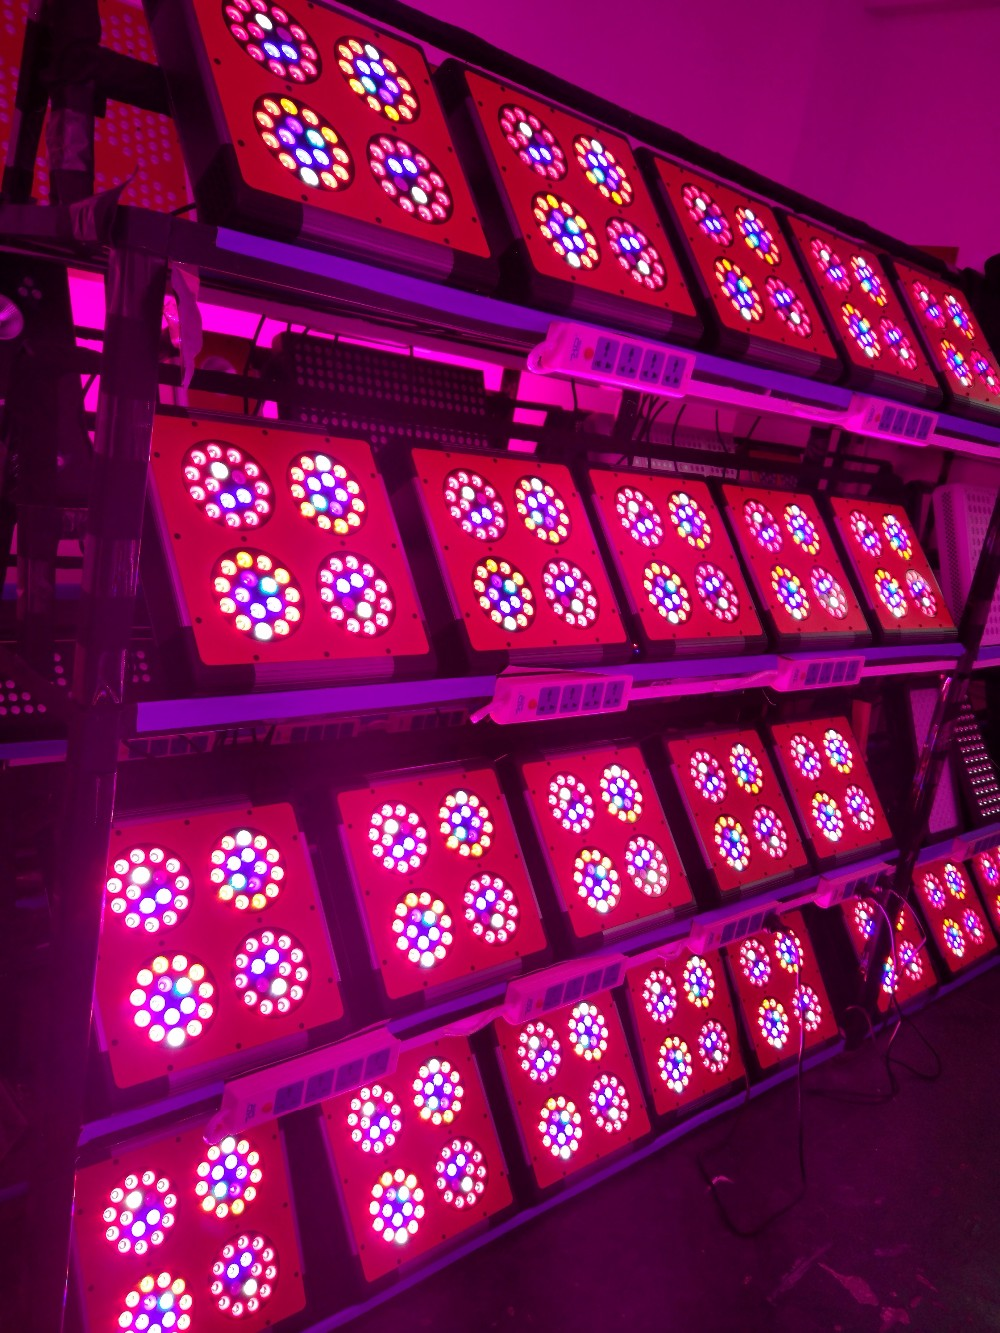 2017 Best Selling Ebay Europe All Product Full Spectrum Led Grow Lights Best04--Best012 200w-1200w indoor medical farm Used